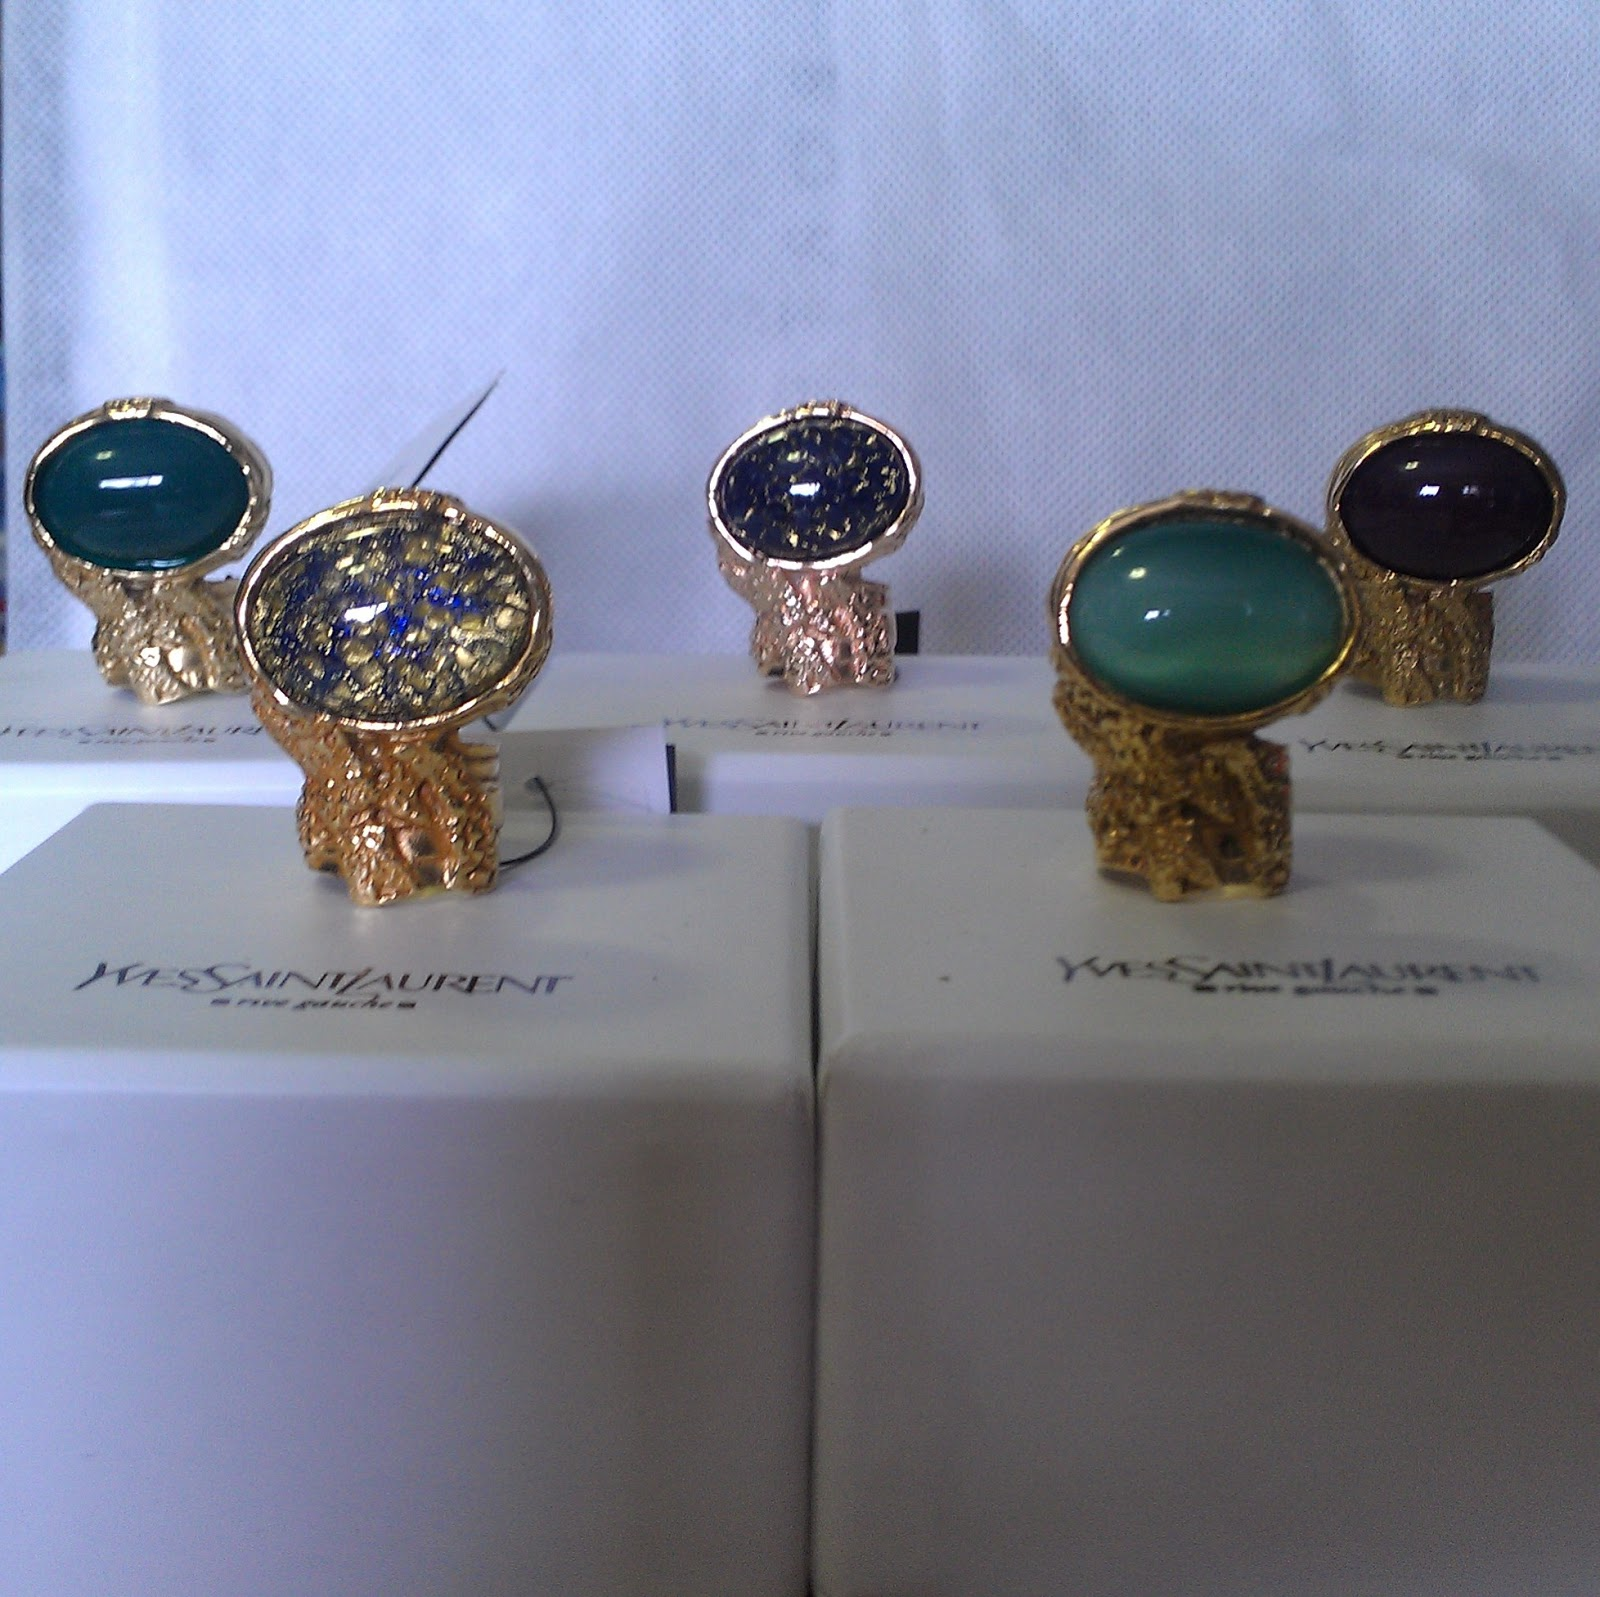 dce5b08d9201 Hermosa vogue arty ring overdose jpg 1600x1597 People with ysl arty ring